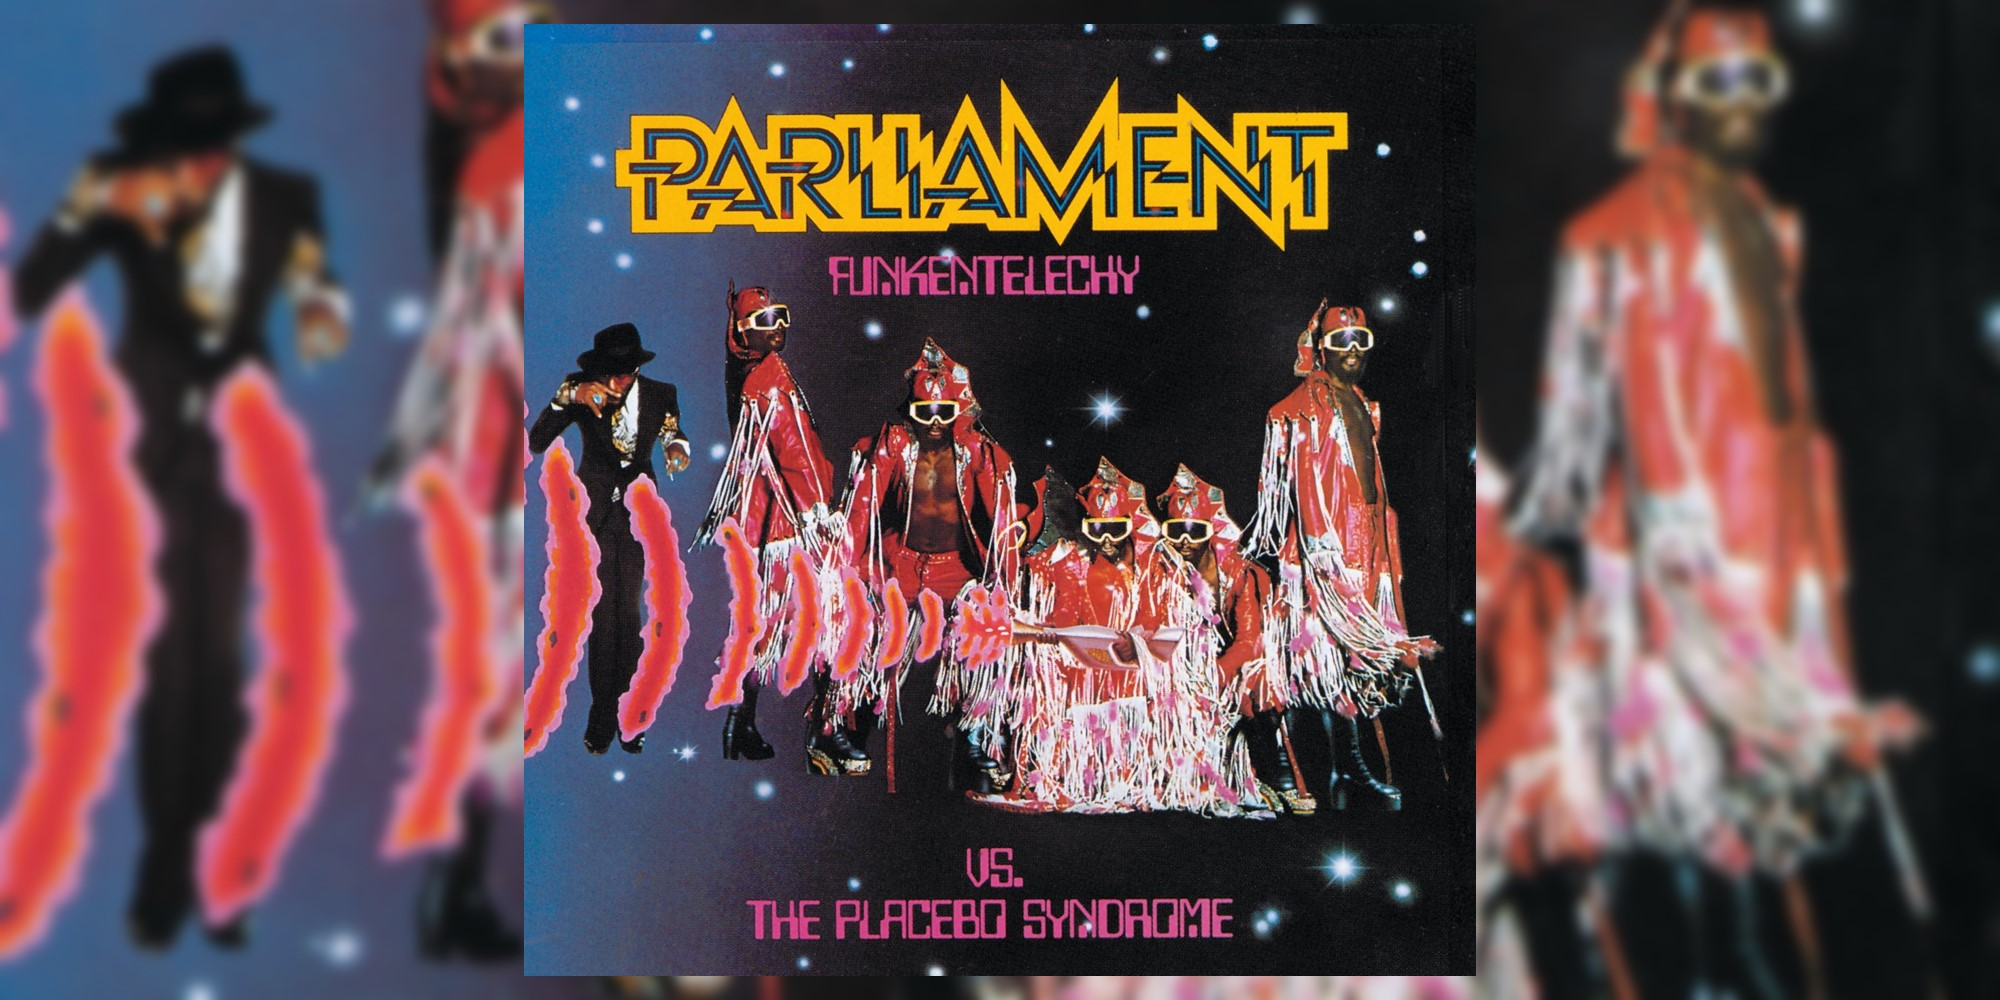 Albumism_Parliament_Funkentelechy_vs_The_Placebo_Syndrome_MainImage.jpg